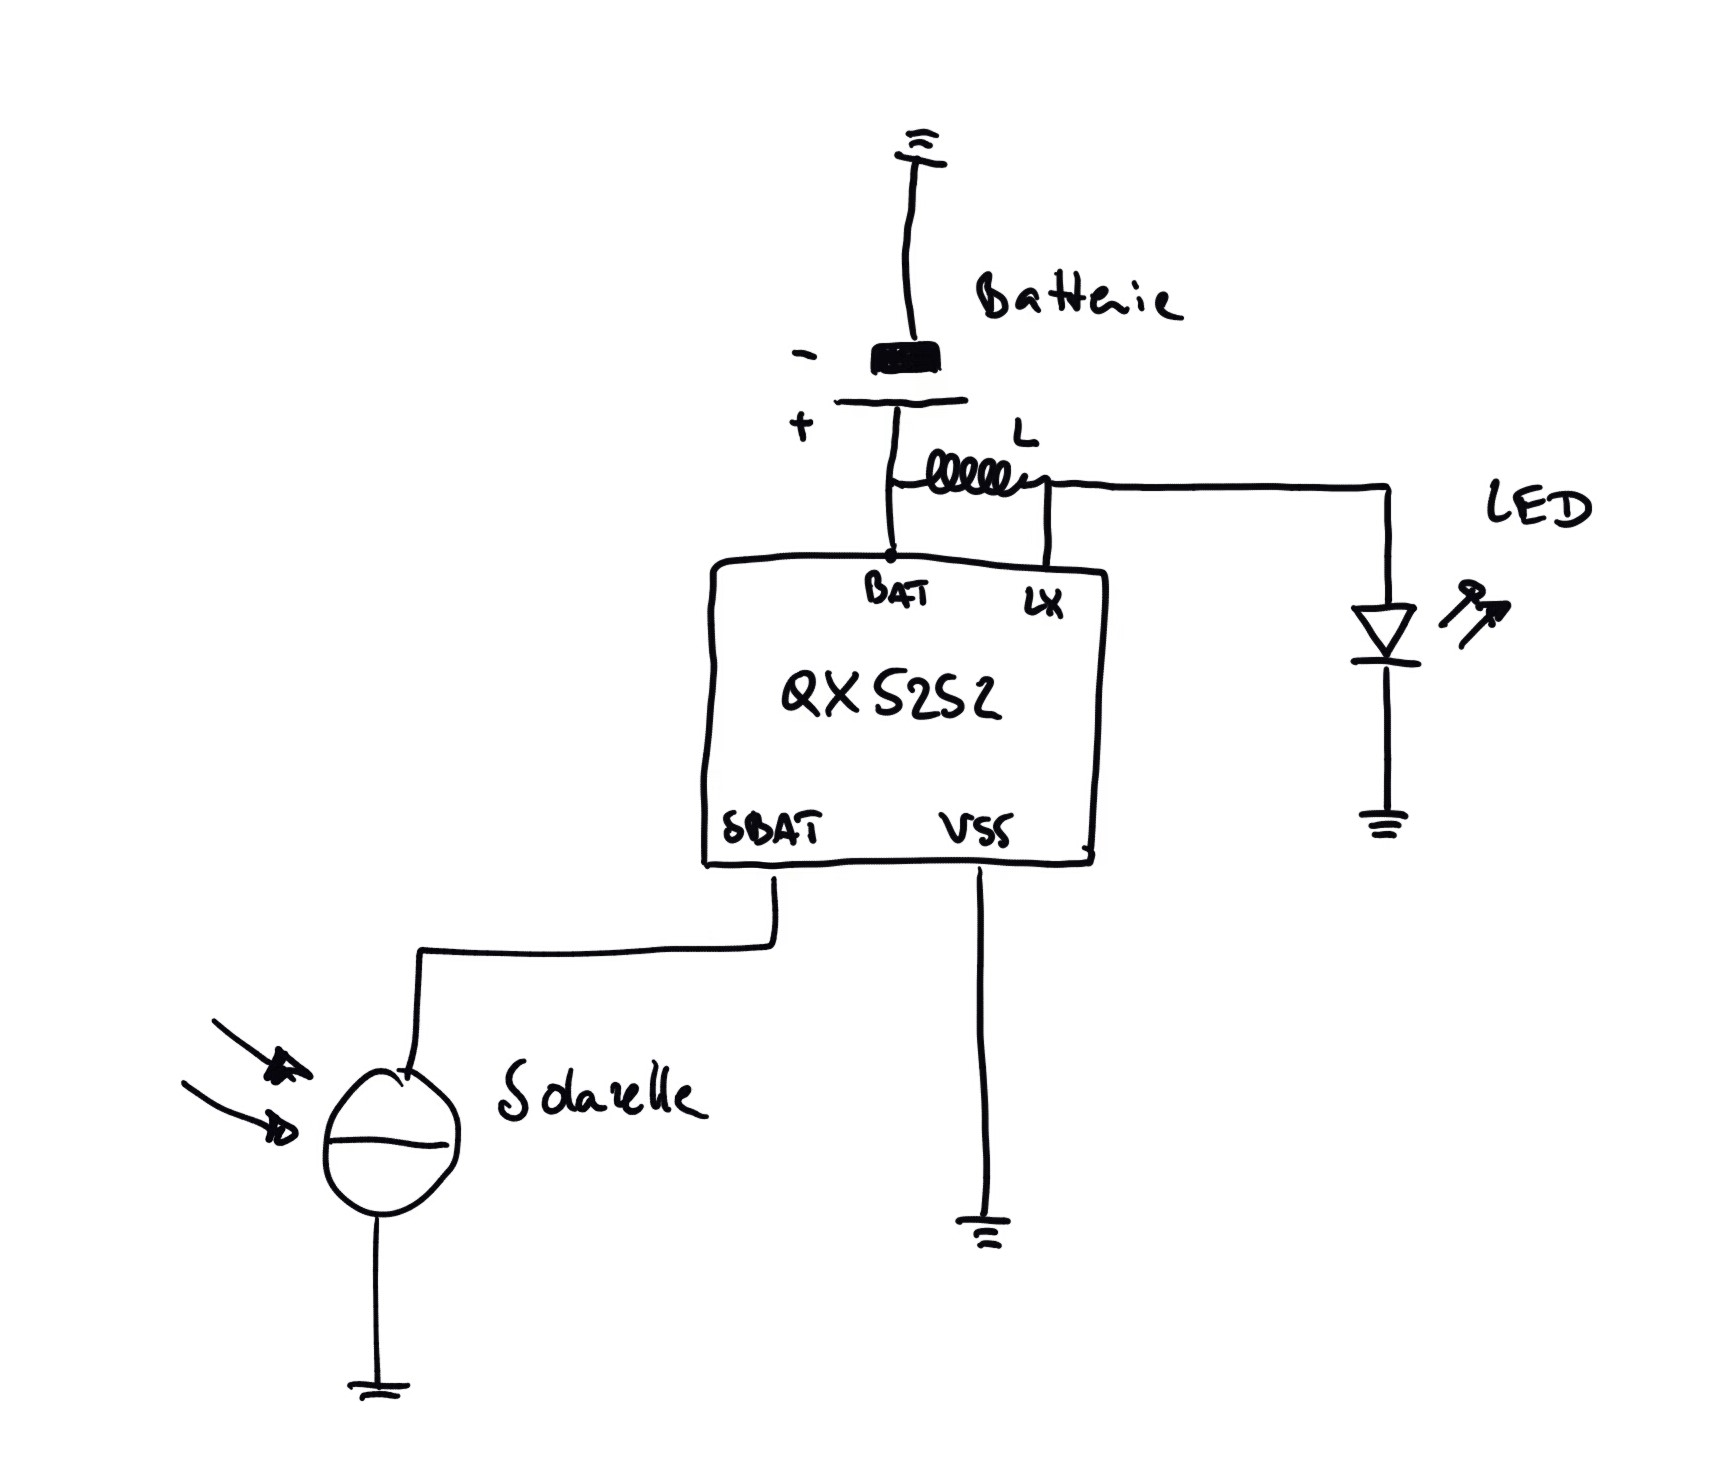 Qx5252 on braun wiring diagram